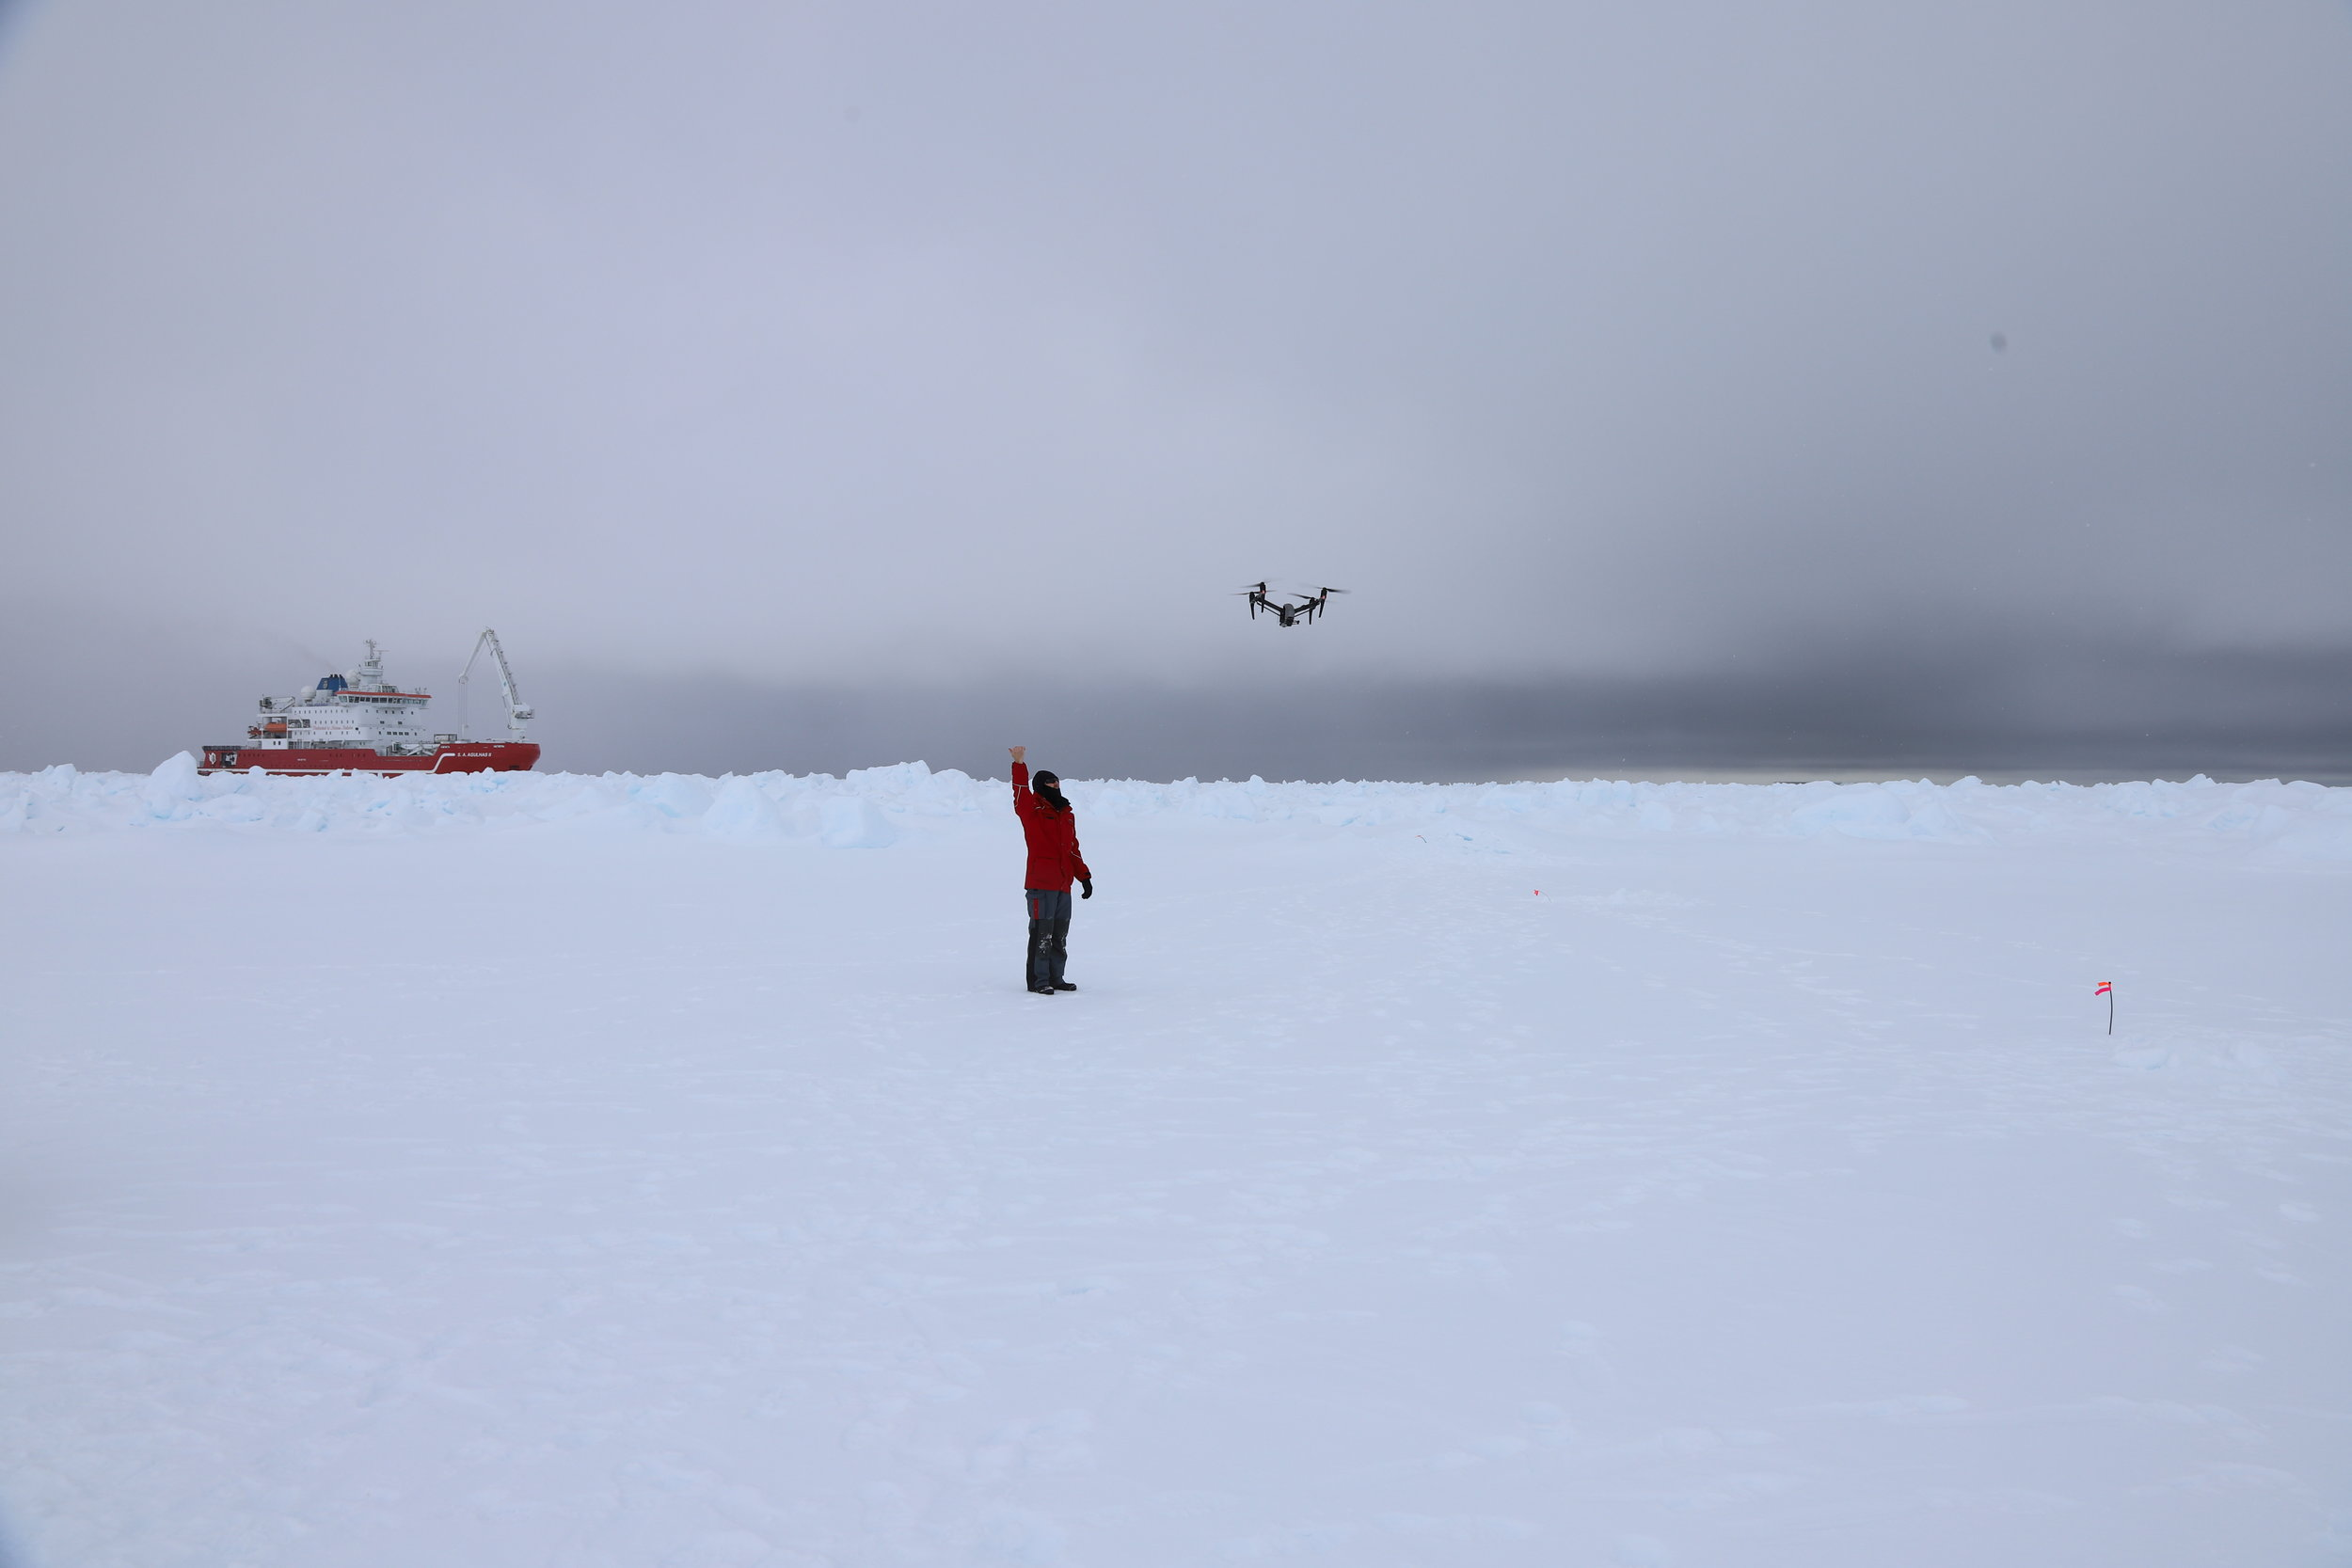 Possibly the first 'drone delivery' in Antarctica as I deliver a memory stick and phantom 4 rotor with an Inspire 2 to the off ship party from the bow of the ship.  Photo credit: Dr. Claire Grogan, Expedition Doctor